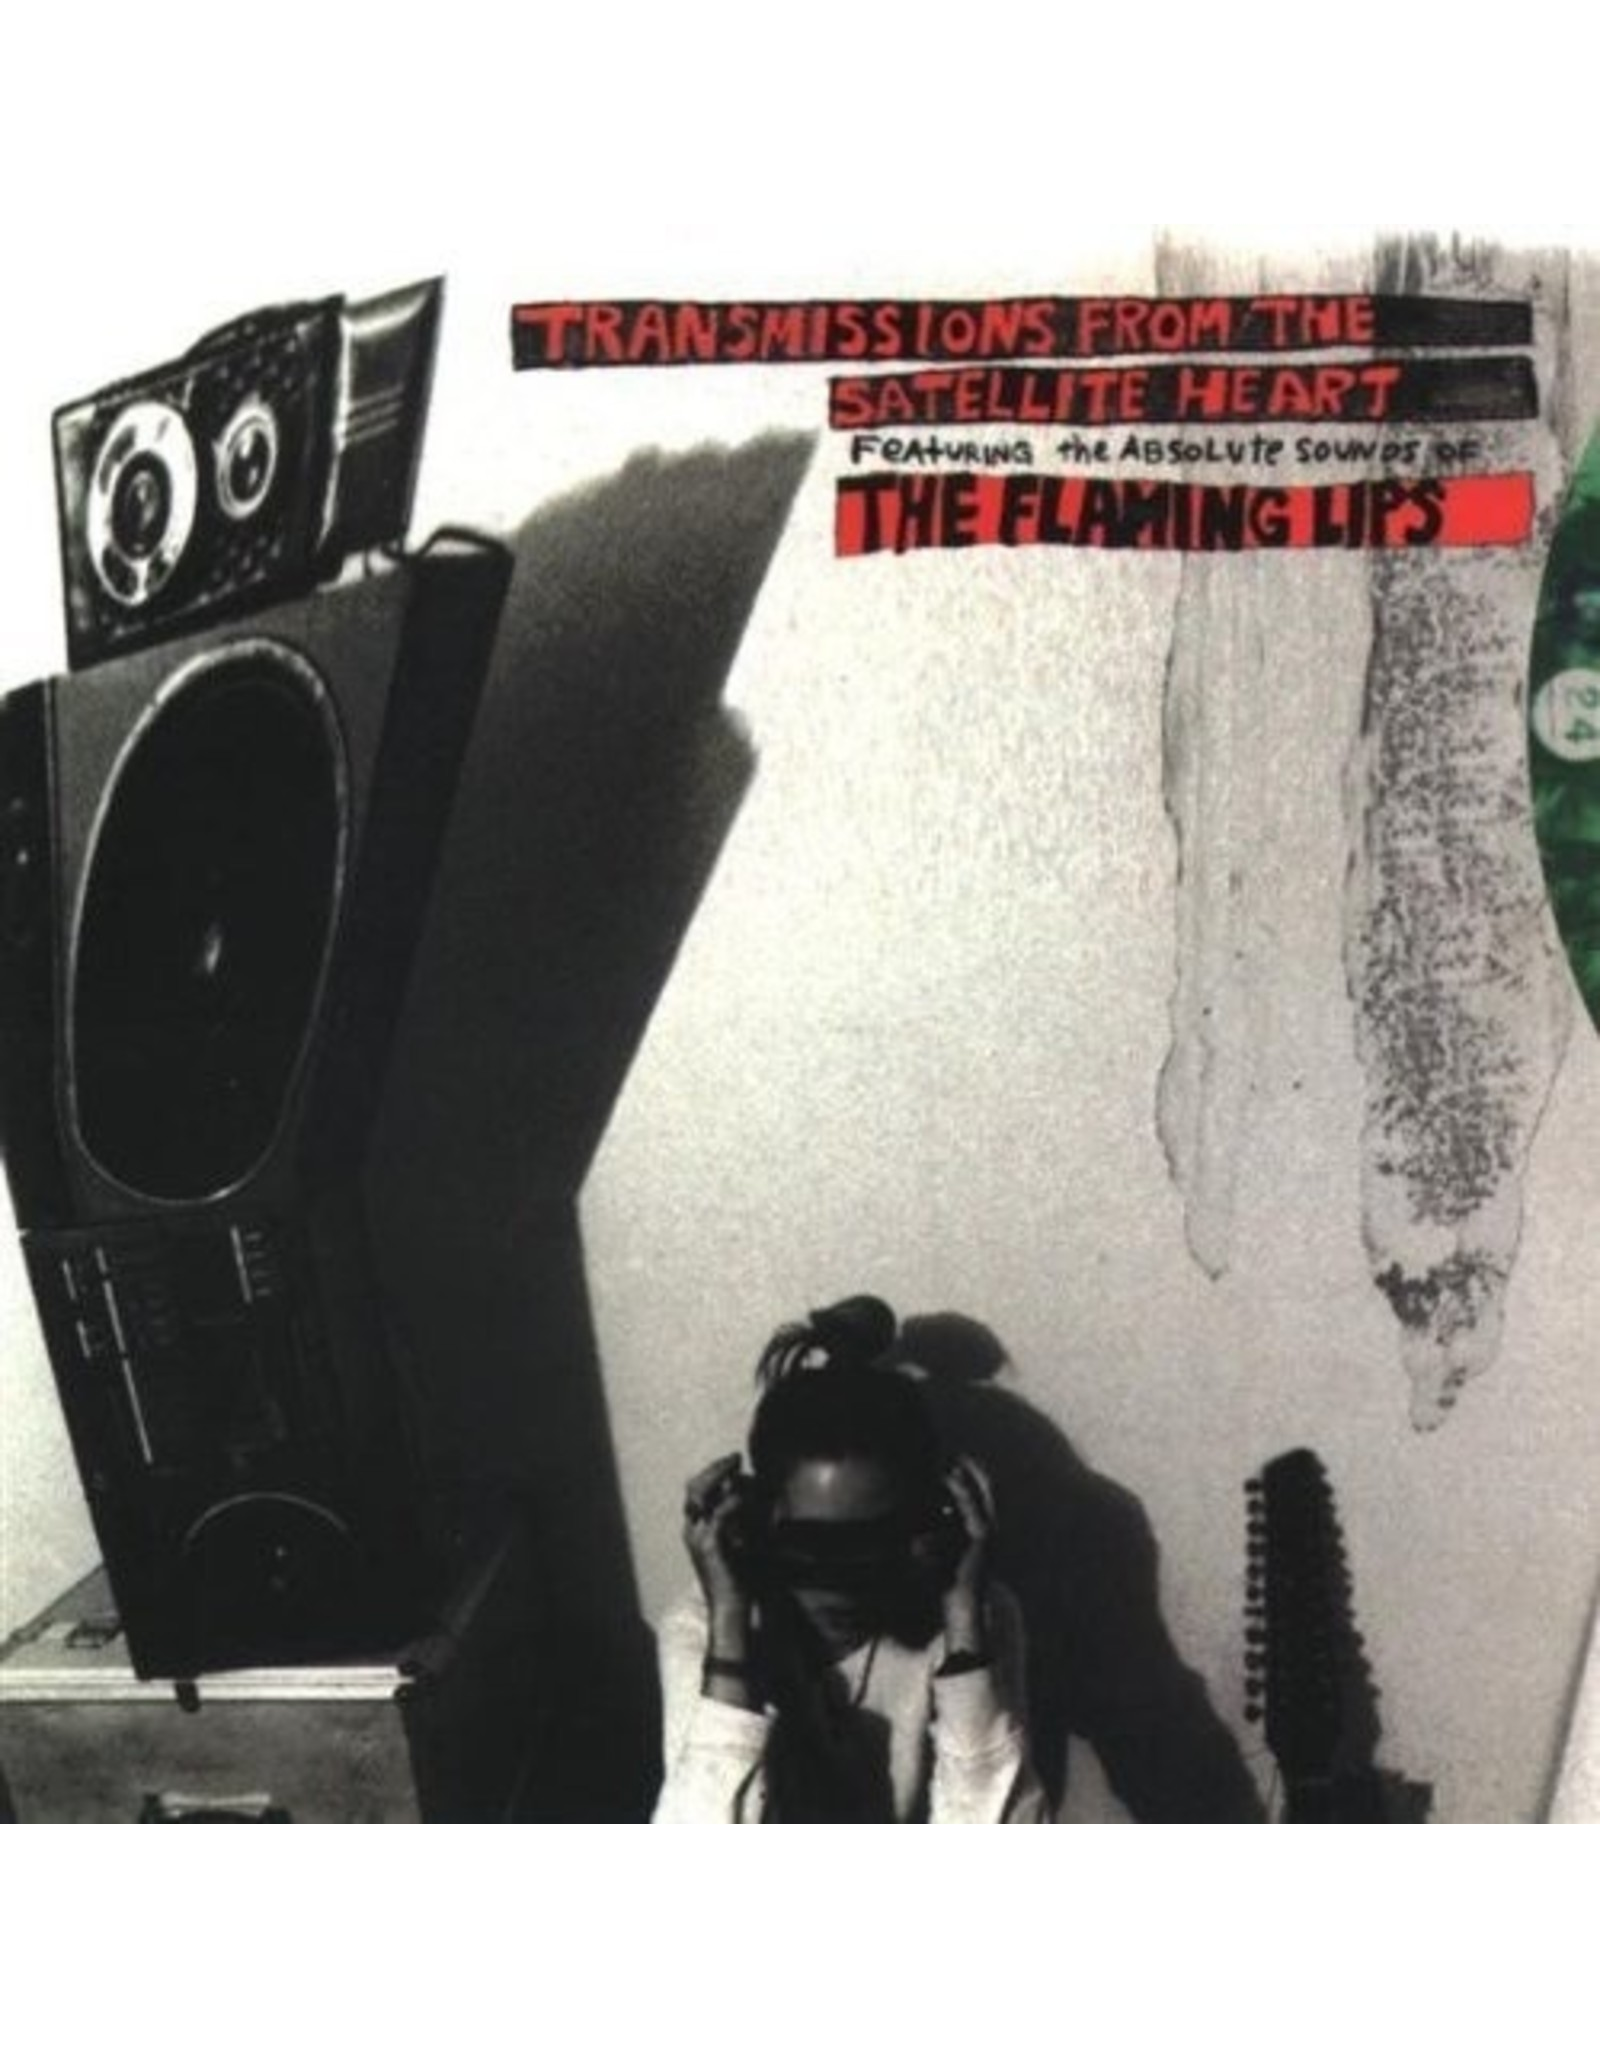 New Vinyl Flaming Lips - Transmissions From The Satellite Heart LP